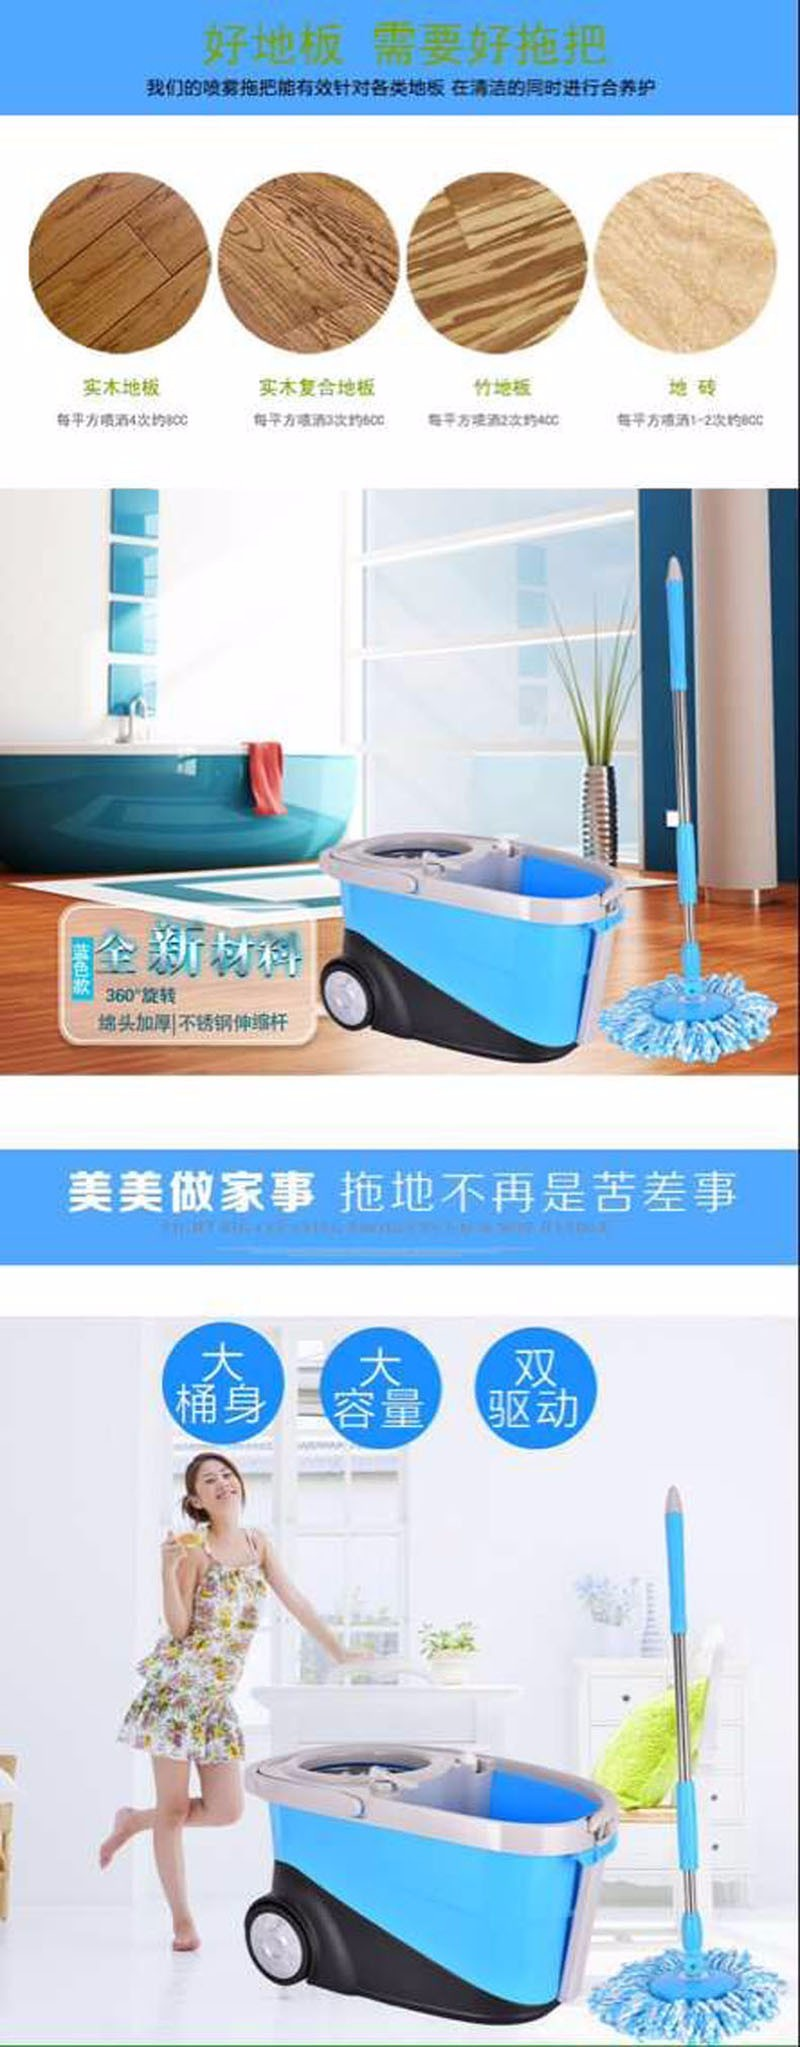 magic mop easy life magic mop 360 rotating magic mop with bucket mop bucket automatic drying double drive hand mop 360